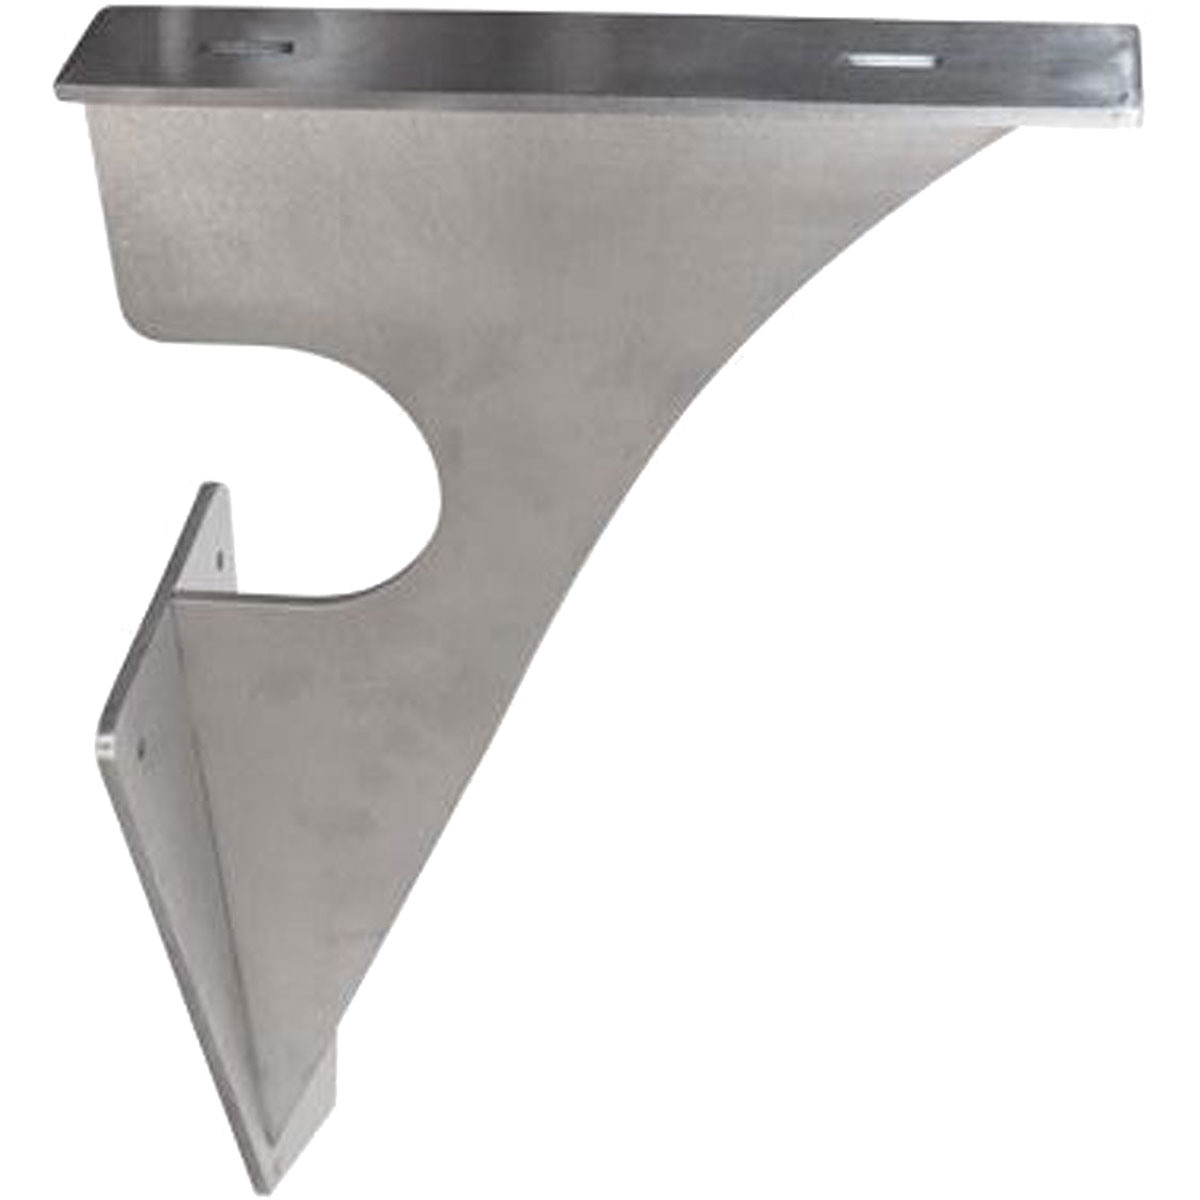 Floating Countertop Supports Alpine Countertop Bracket Alpine Countertop Support